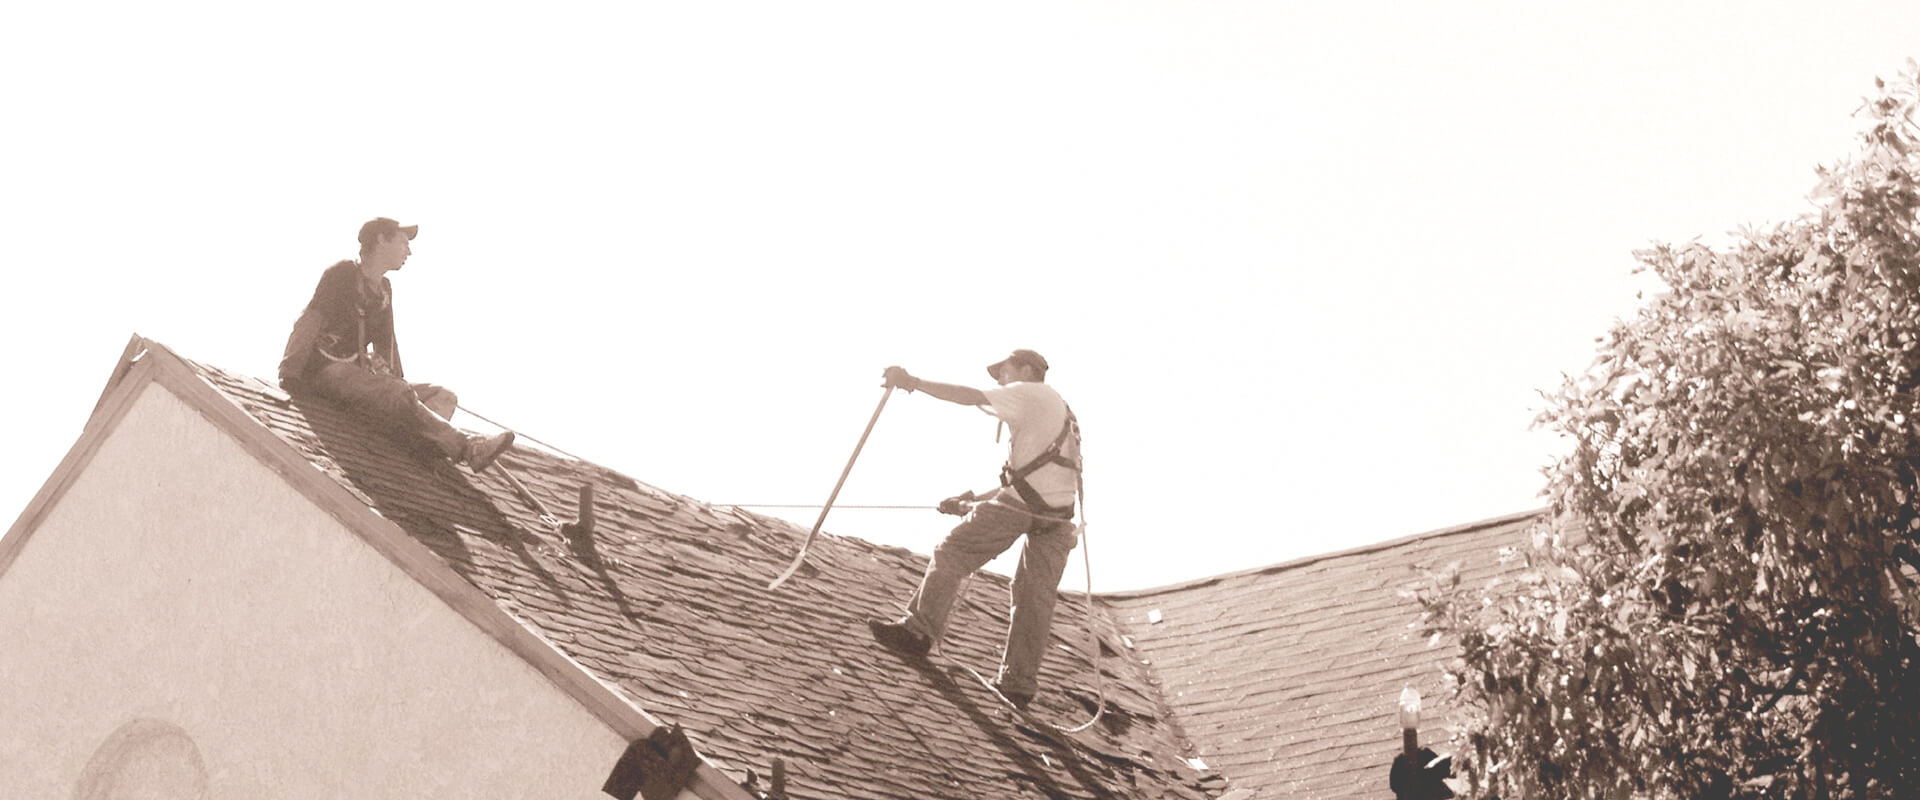 Pasadena Roofing Contractor You Can Trust to Protect and Improve Your Biggest Investment